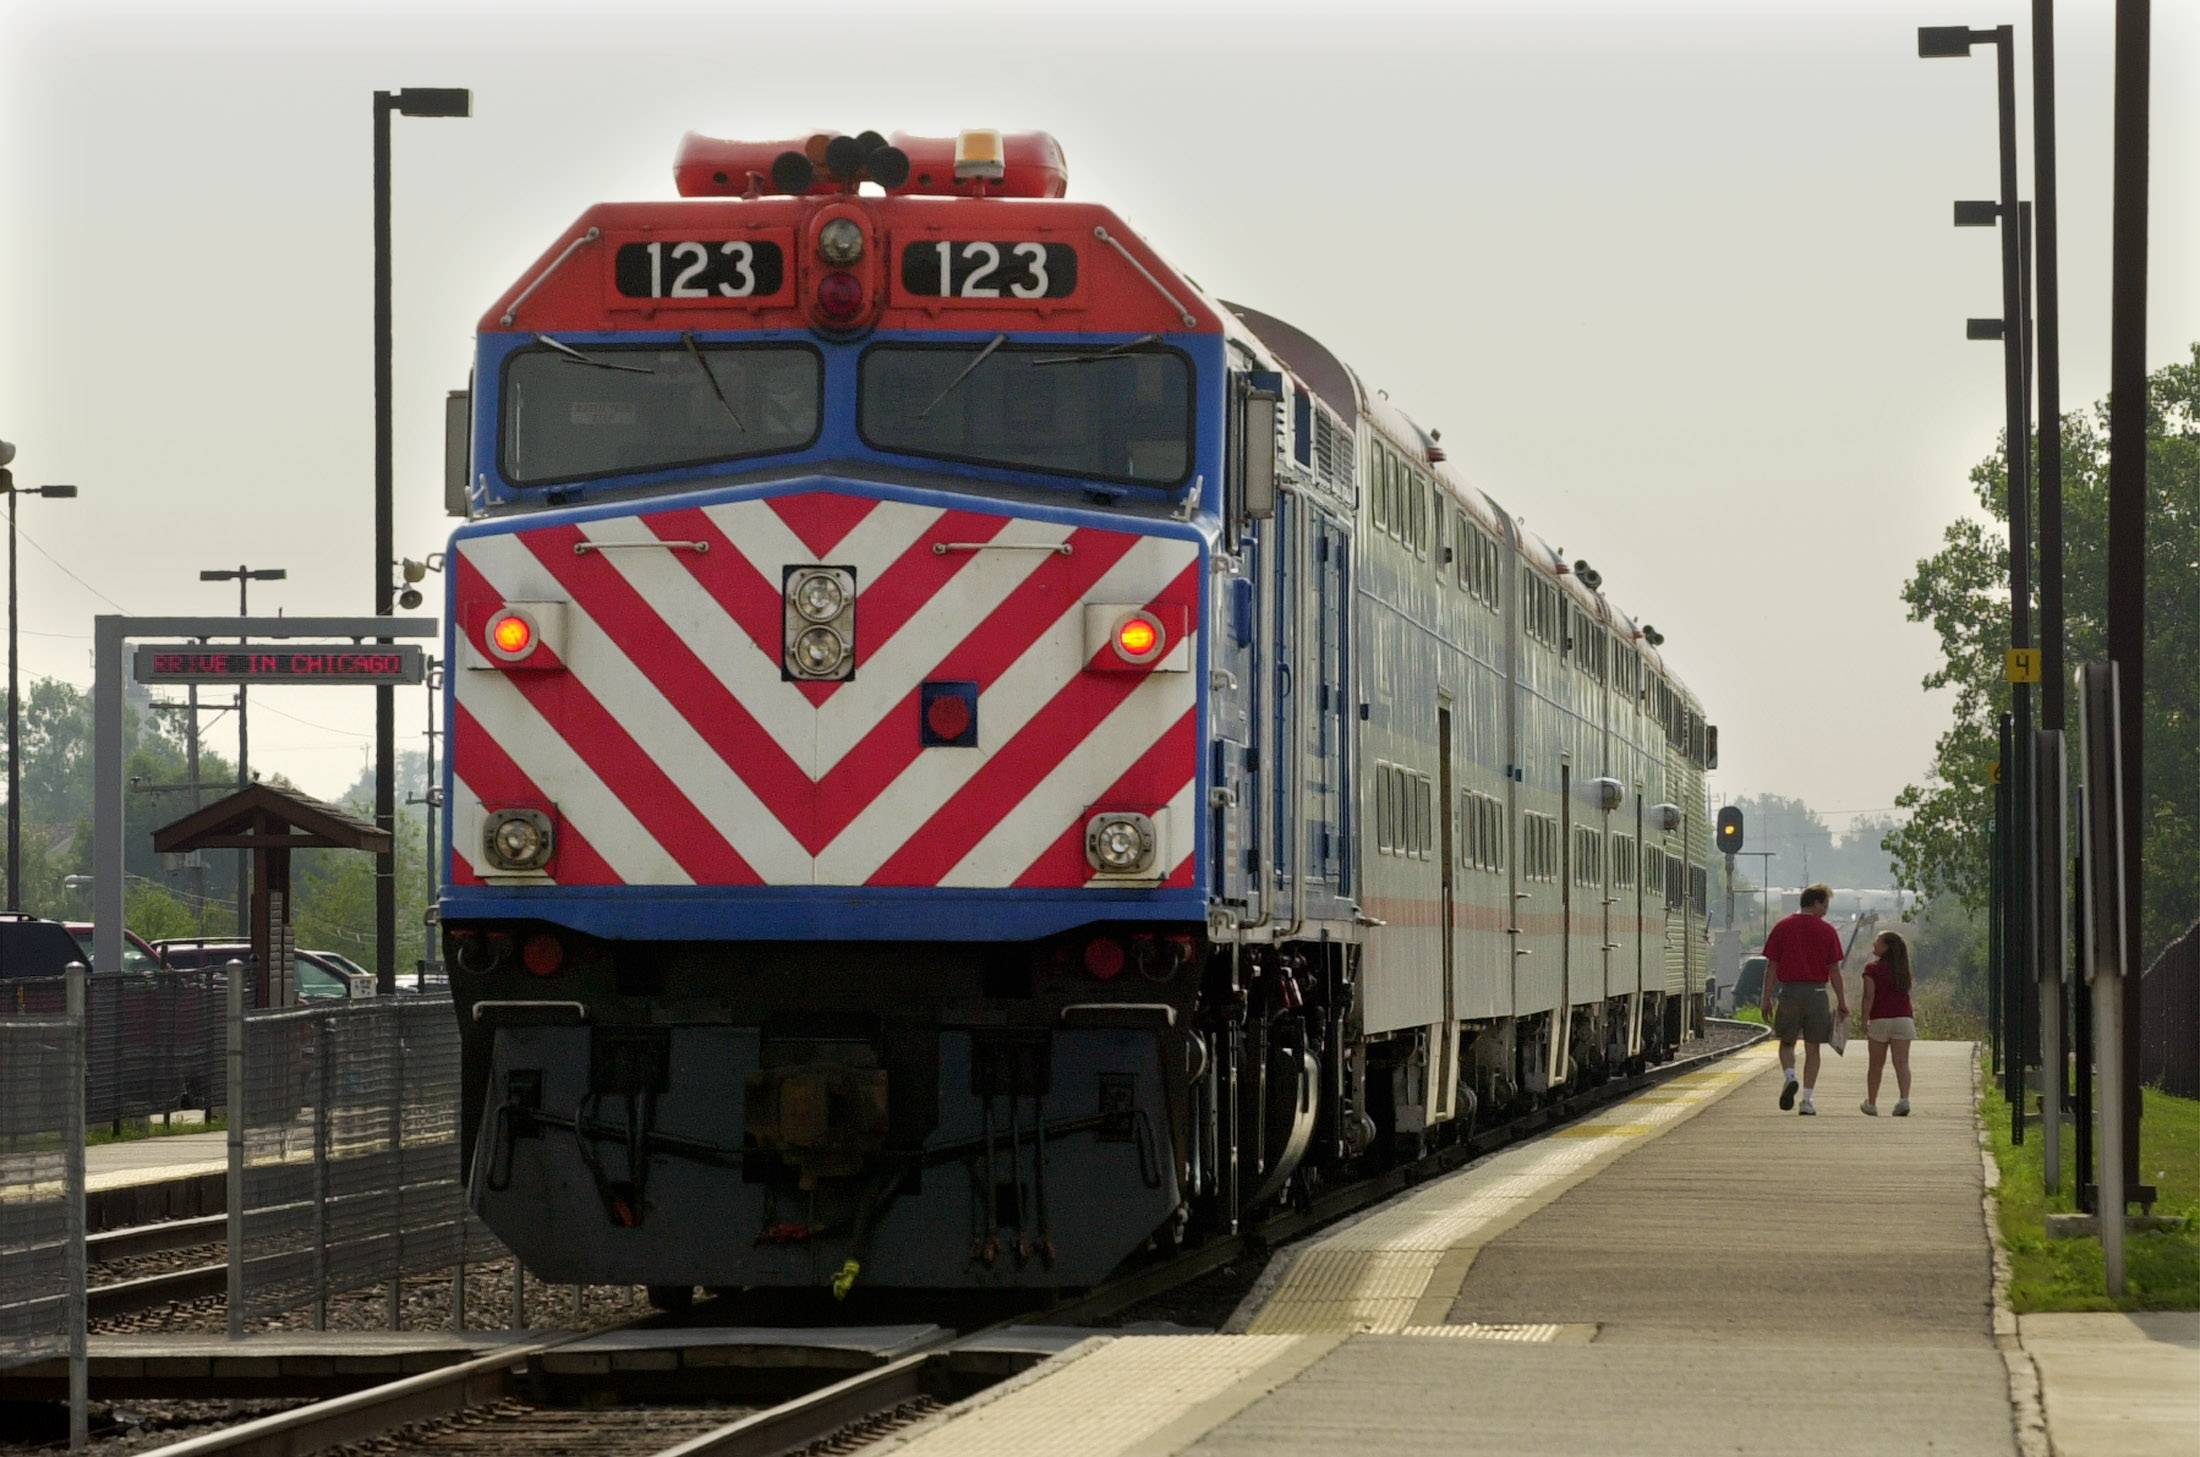 Metra: More fare hikes, service reductions possible